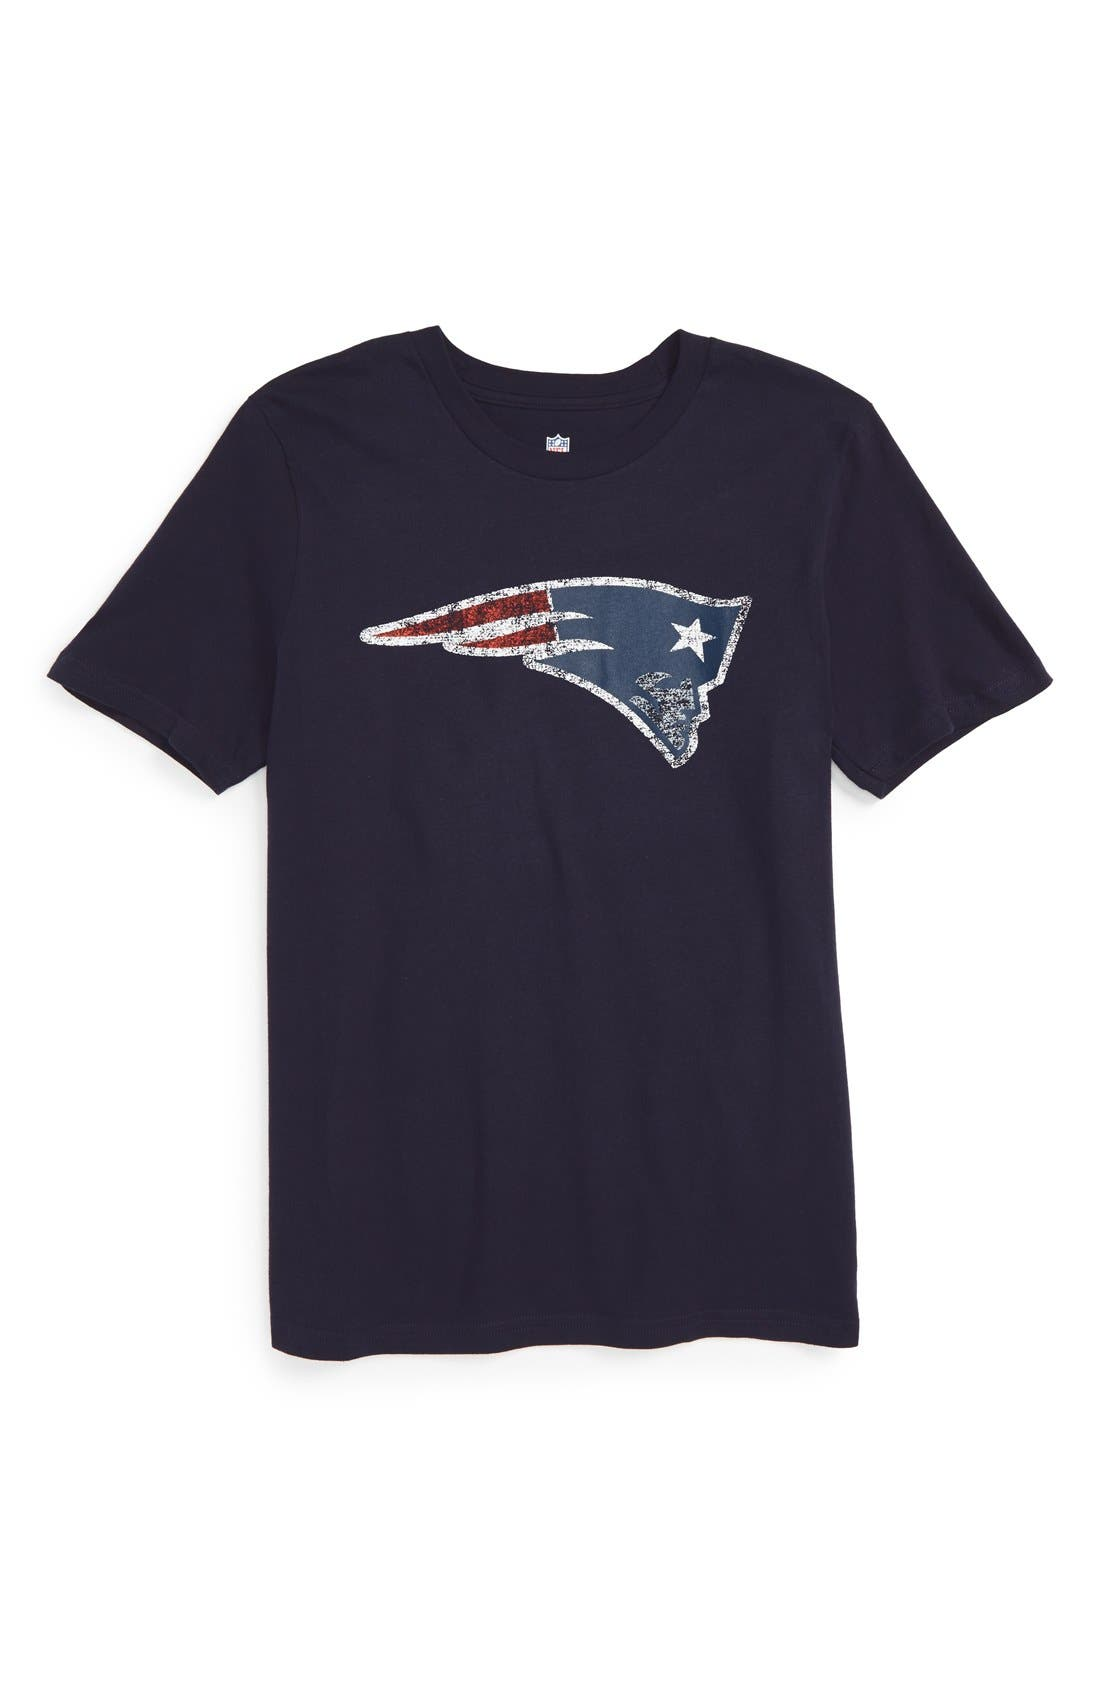 Alternate Image 1 Selected - Outerstuff 'NFL - New England Patriots' Distressed Logo Graphic T-Shirt (Big Boys)